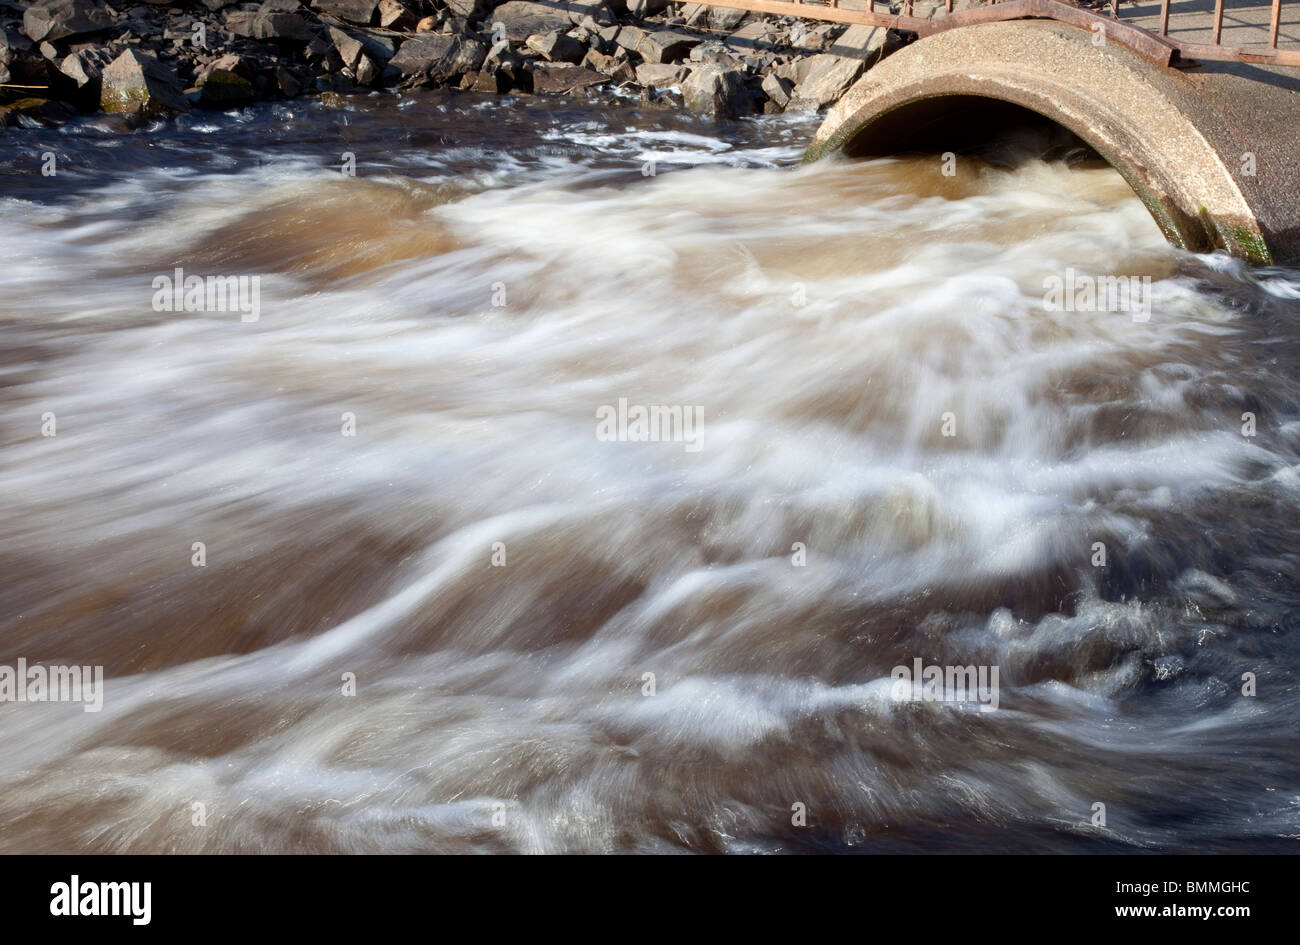 Flooded culvert - Stock Image